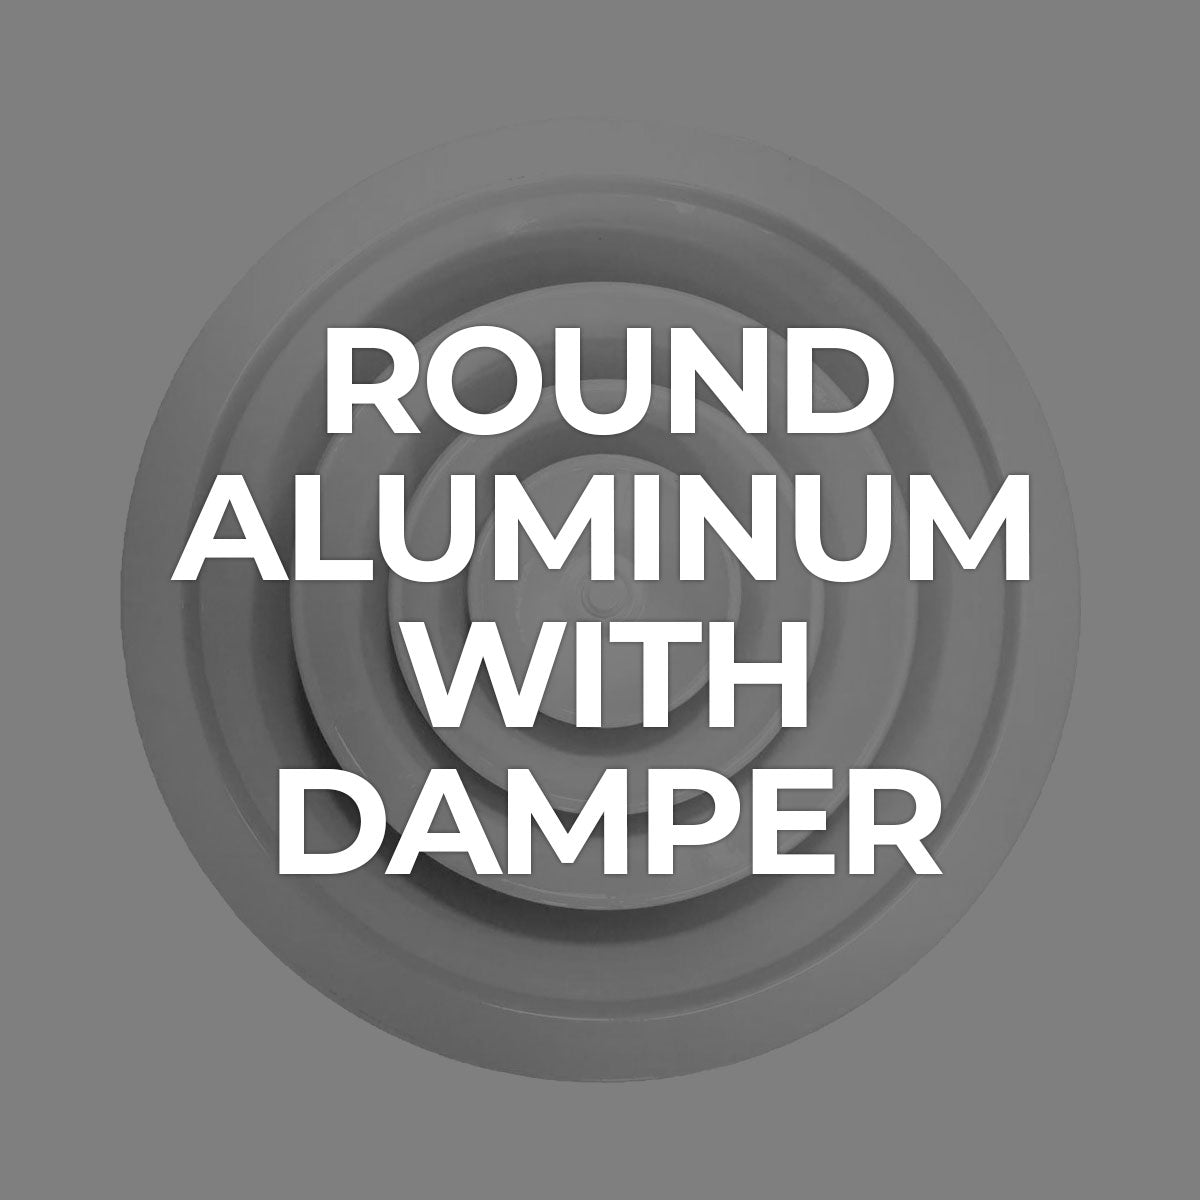 Supply / Round Aluminum with Damper